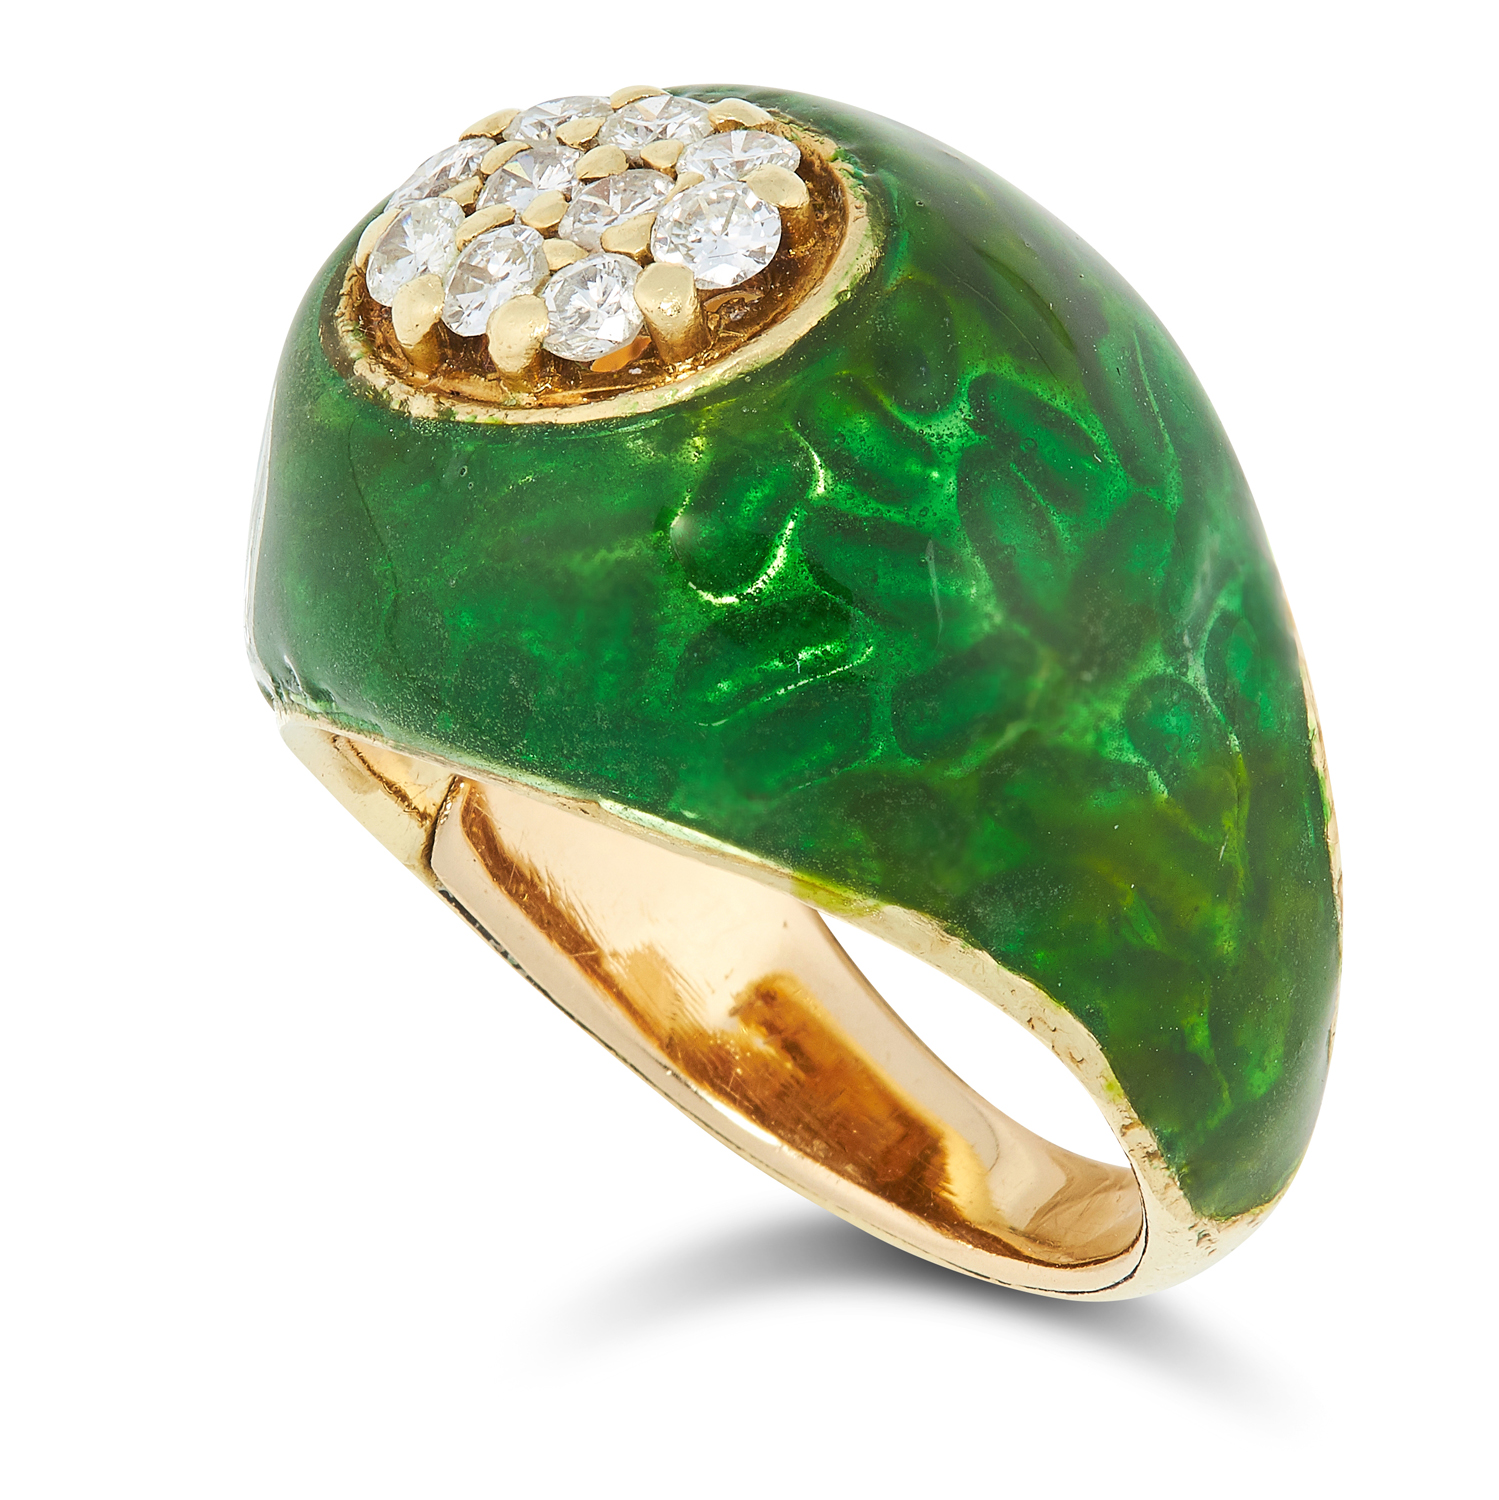 A DIAMOND AND ENAMEL DRESS RING set with round cut diamonds in a border of green enamel, size M / 6, - Image 2 of 2